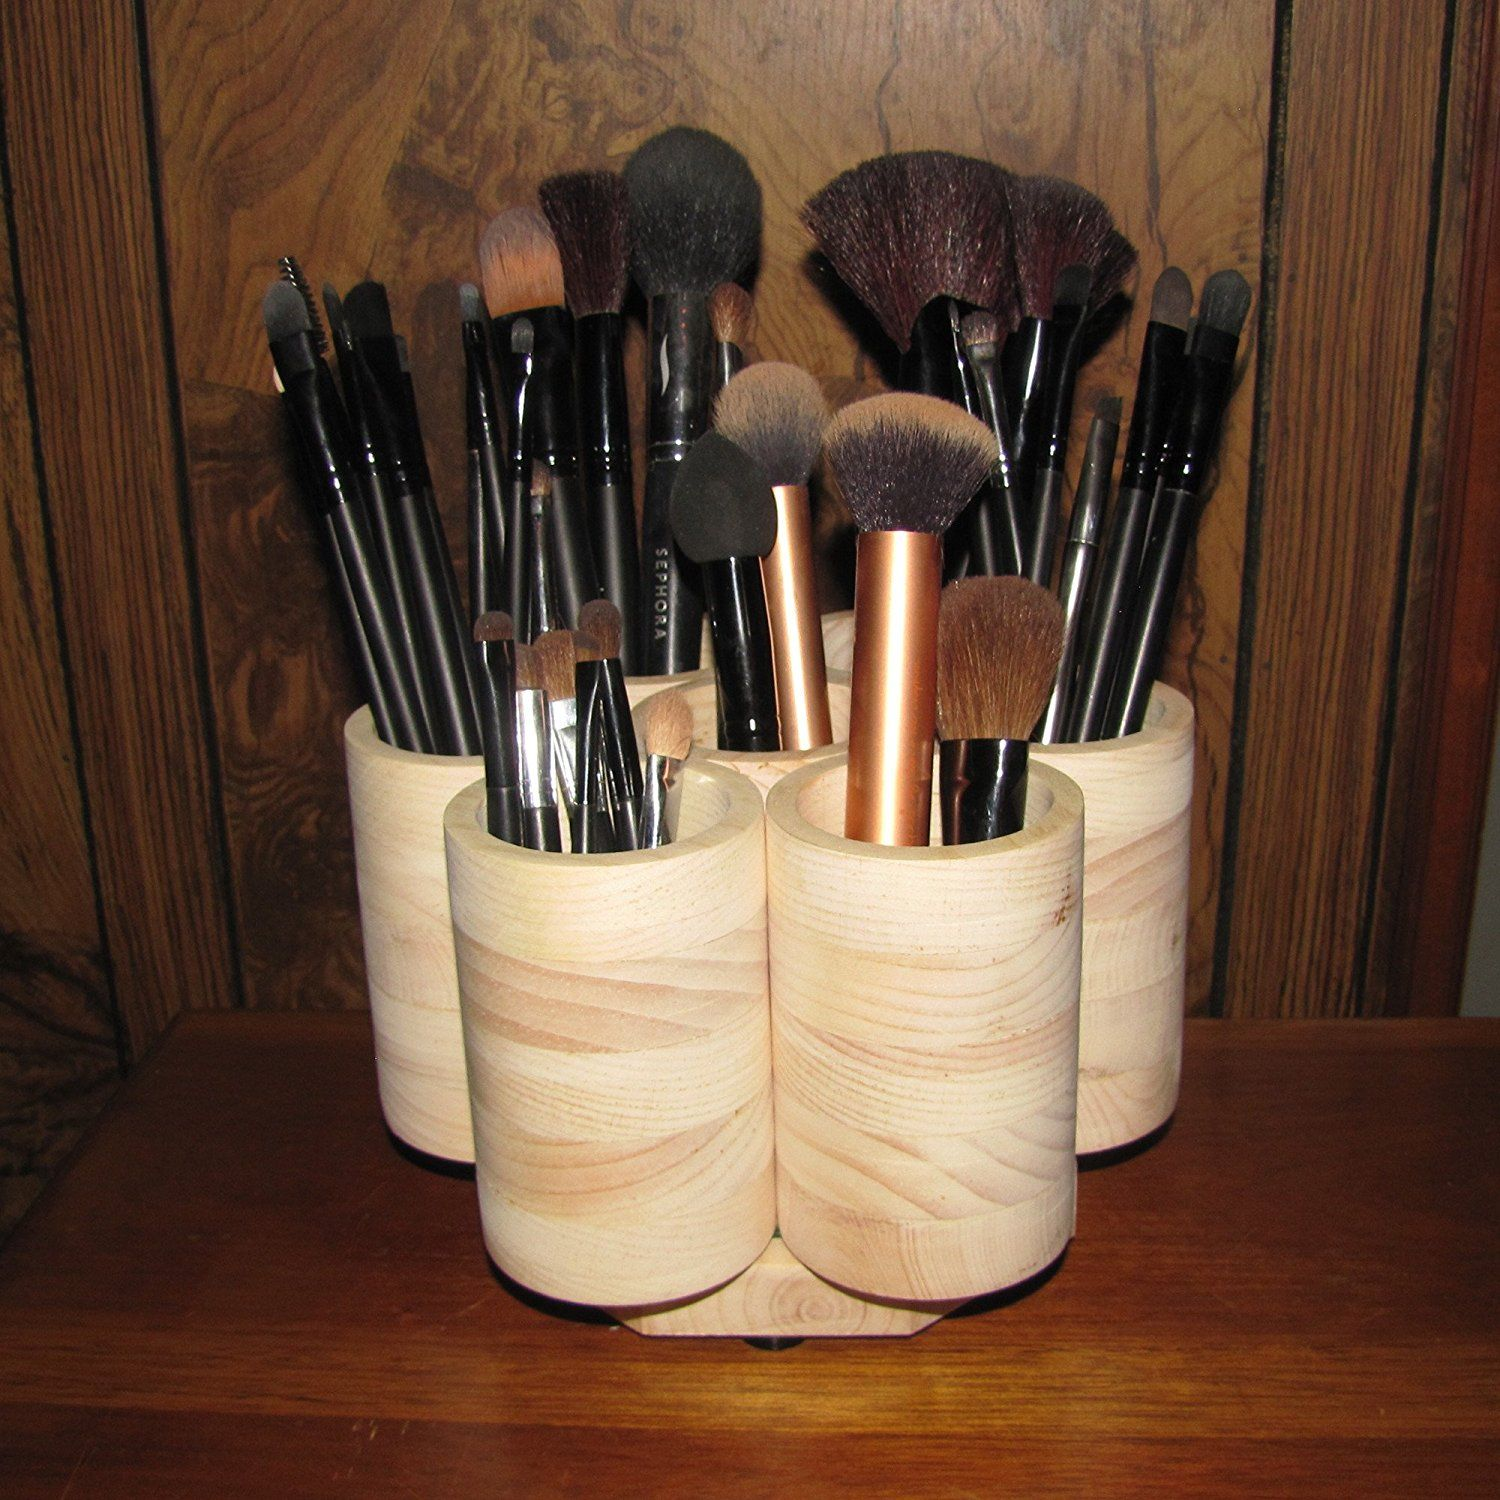 7 Cup Studio Rotating Colored Pencil Holder